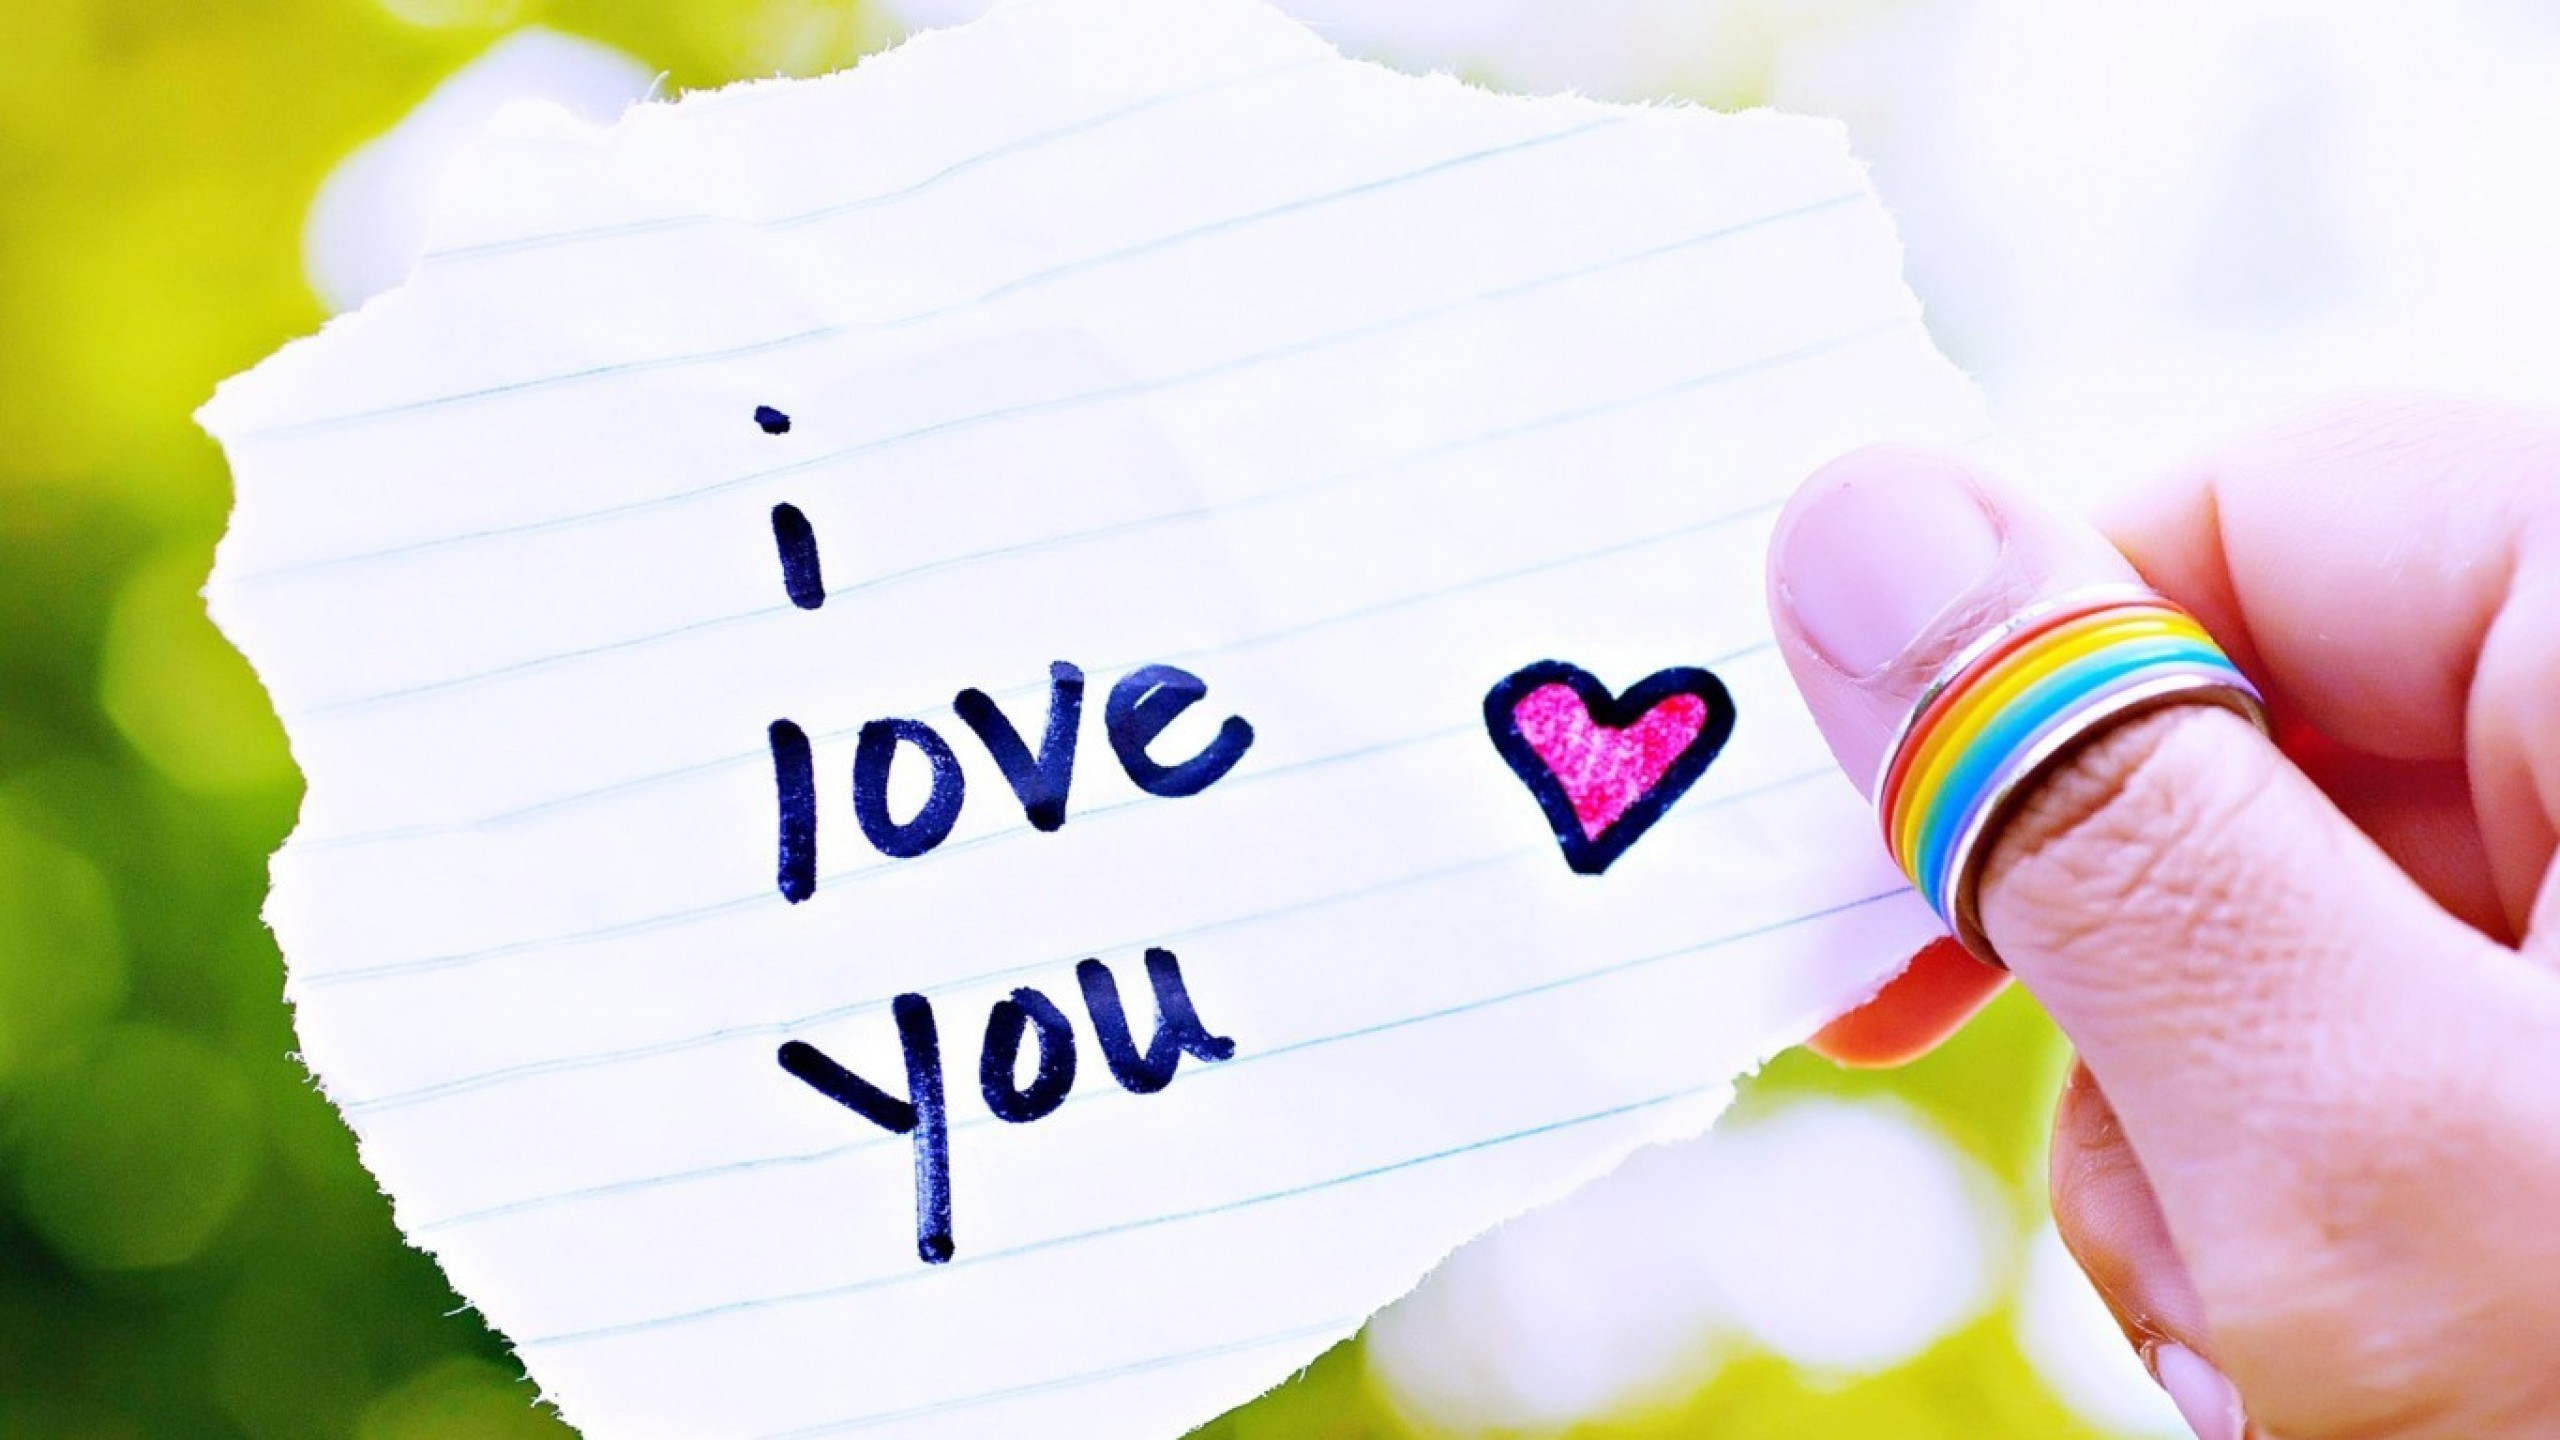 2560x1440 I Love You HD Wallpaper